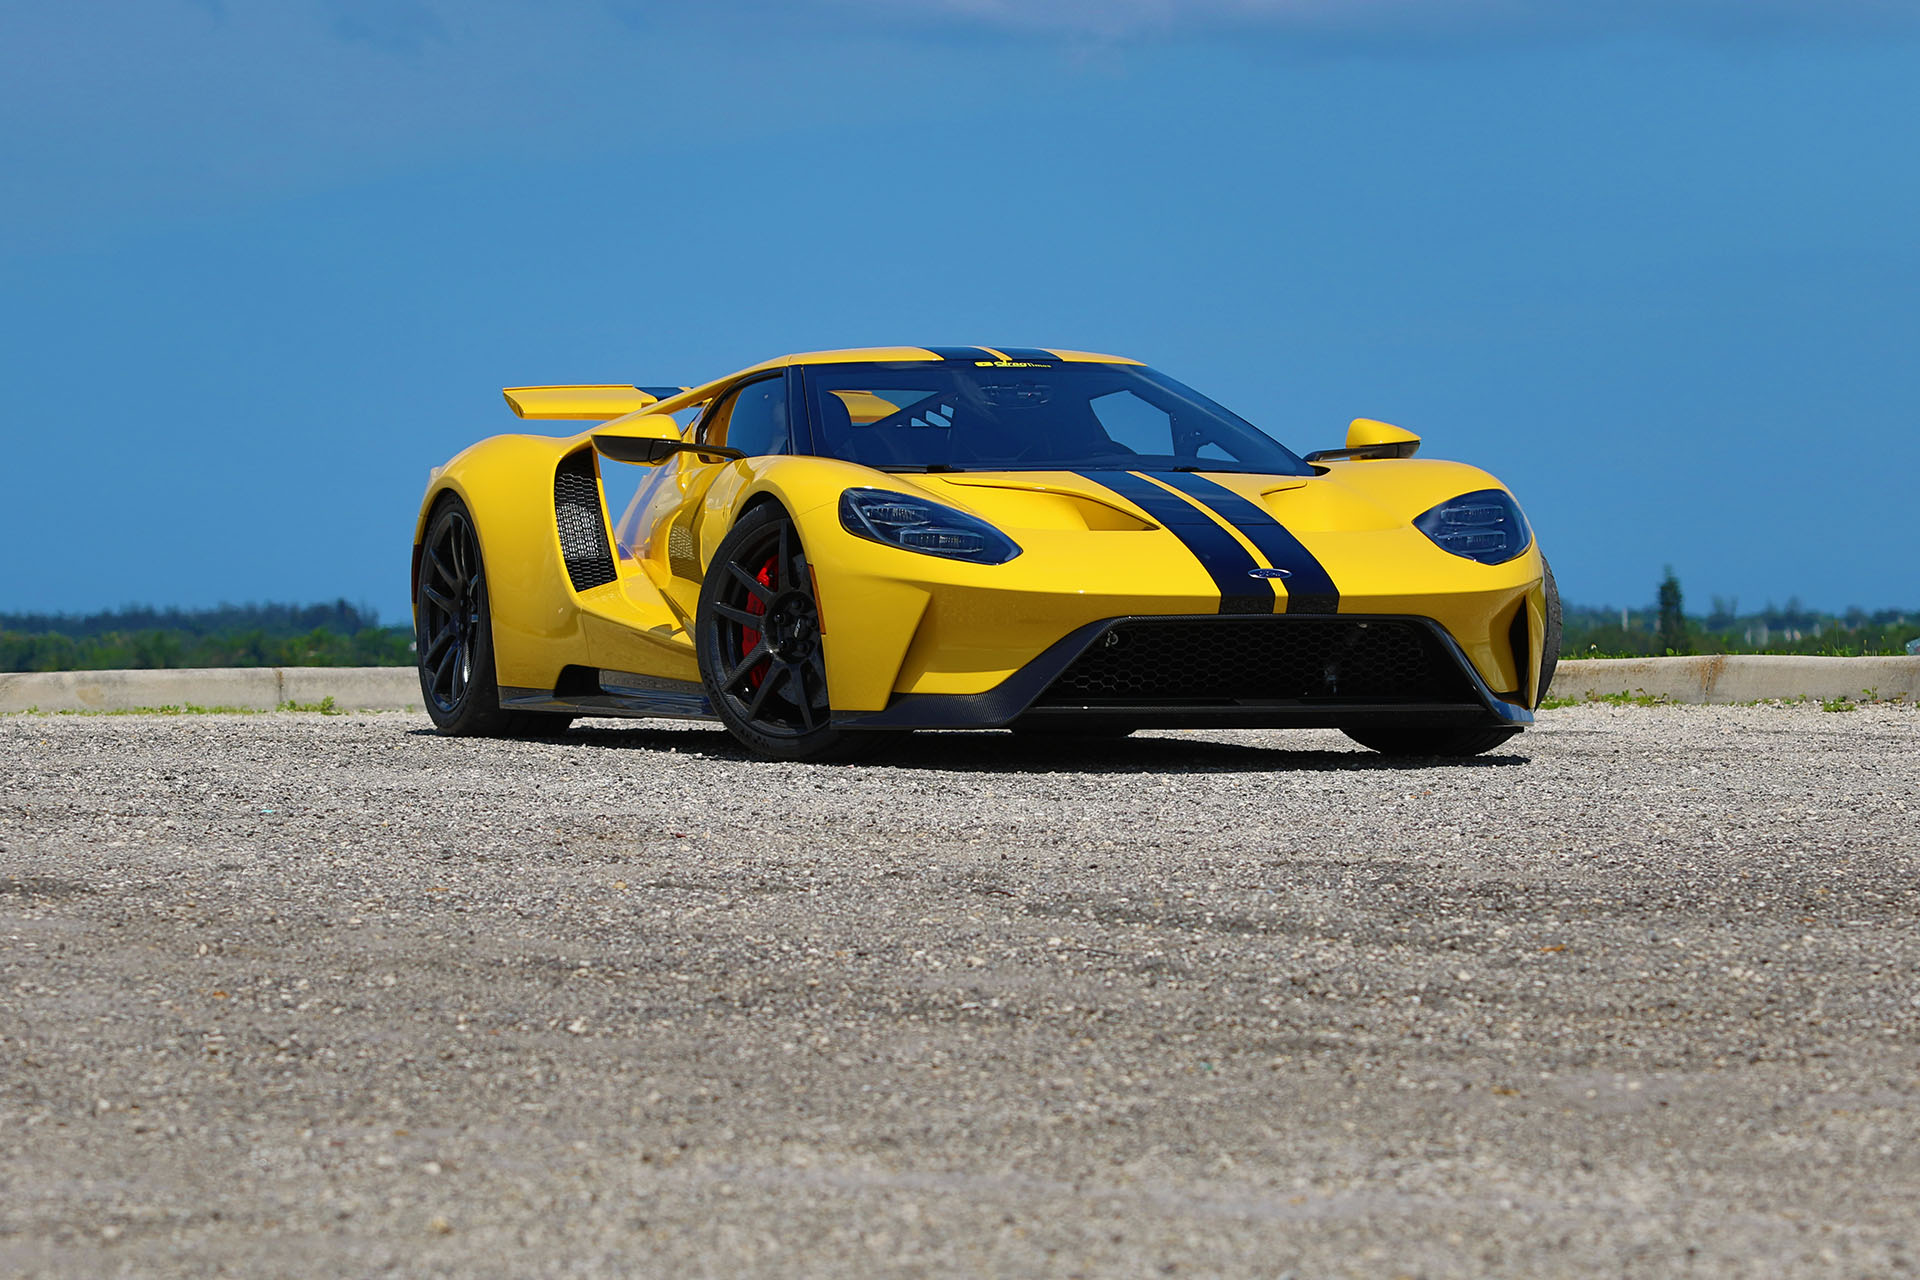 2018-Ford-GT-DragtTimes-vista-view-01.jp